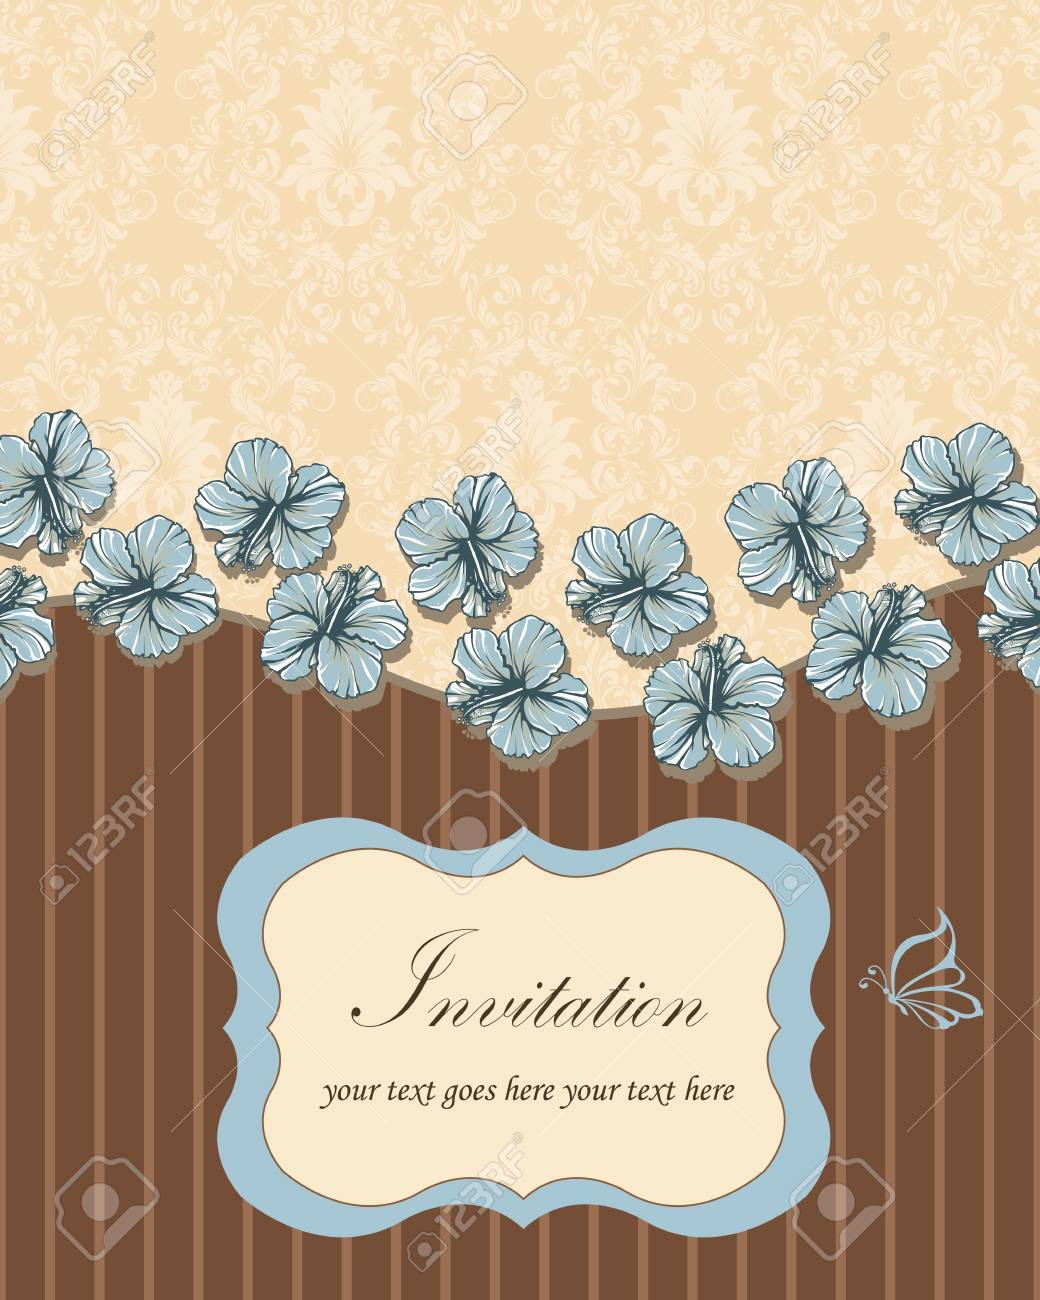 Vintage invitation card with ornate elegant retro abstract floral banco de imagens vintage invitation card with ornate elegant retro abstract floral design light blue hibiscus flowers on pale yellow and chocolate brown stopboris Image collections